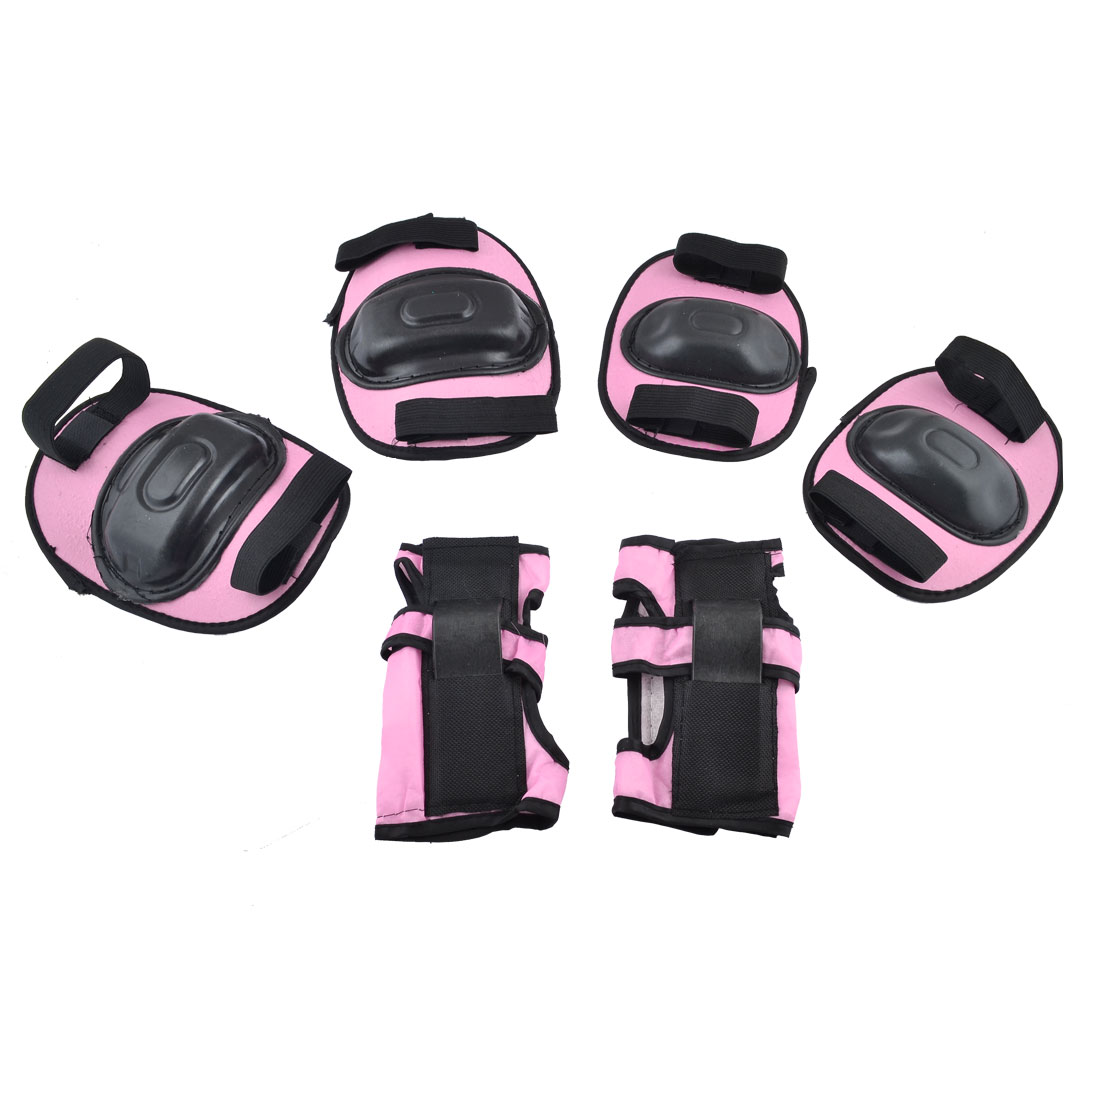 Children Kids Skating Biking Wrist Elbow Knee Pad Mat Pink Black 3 Pairs